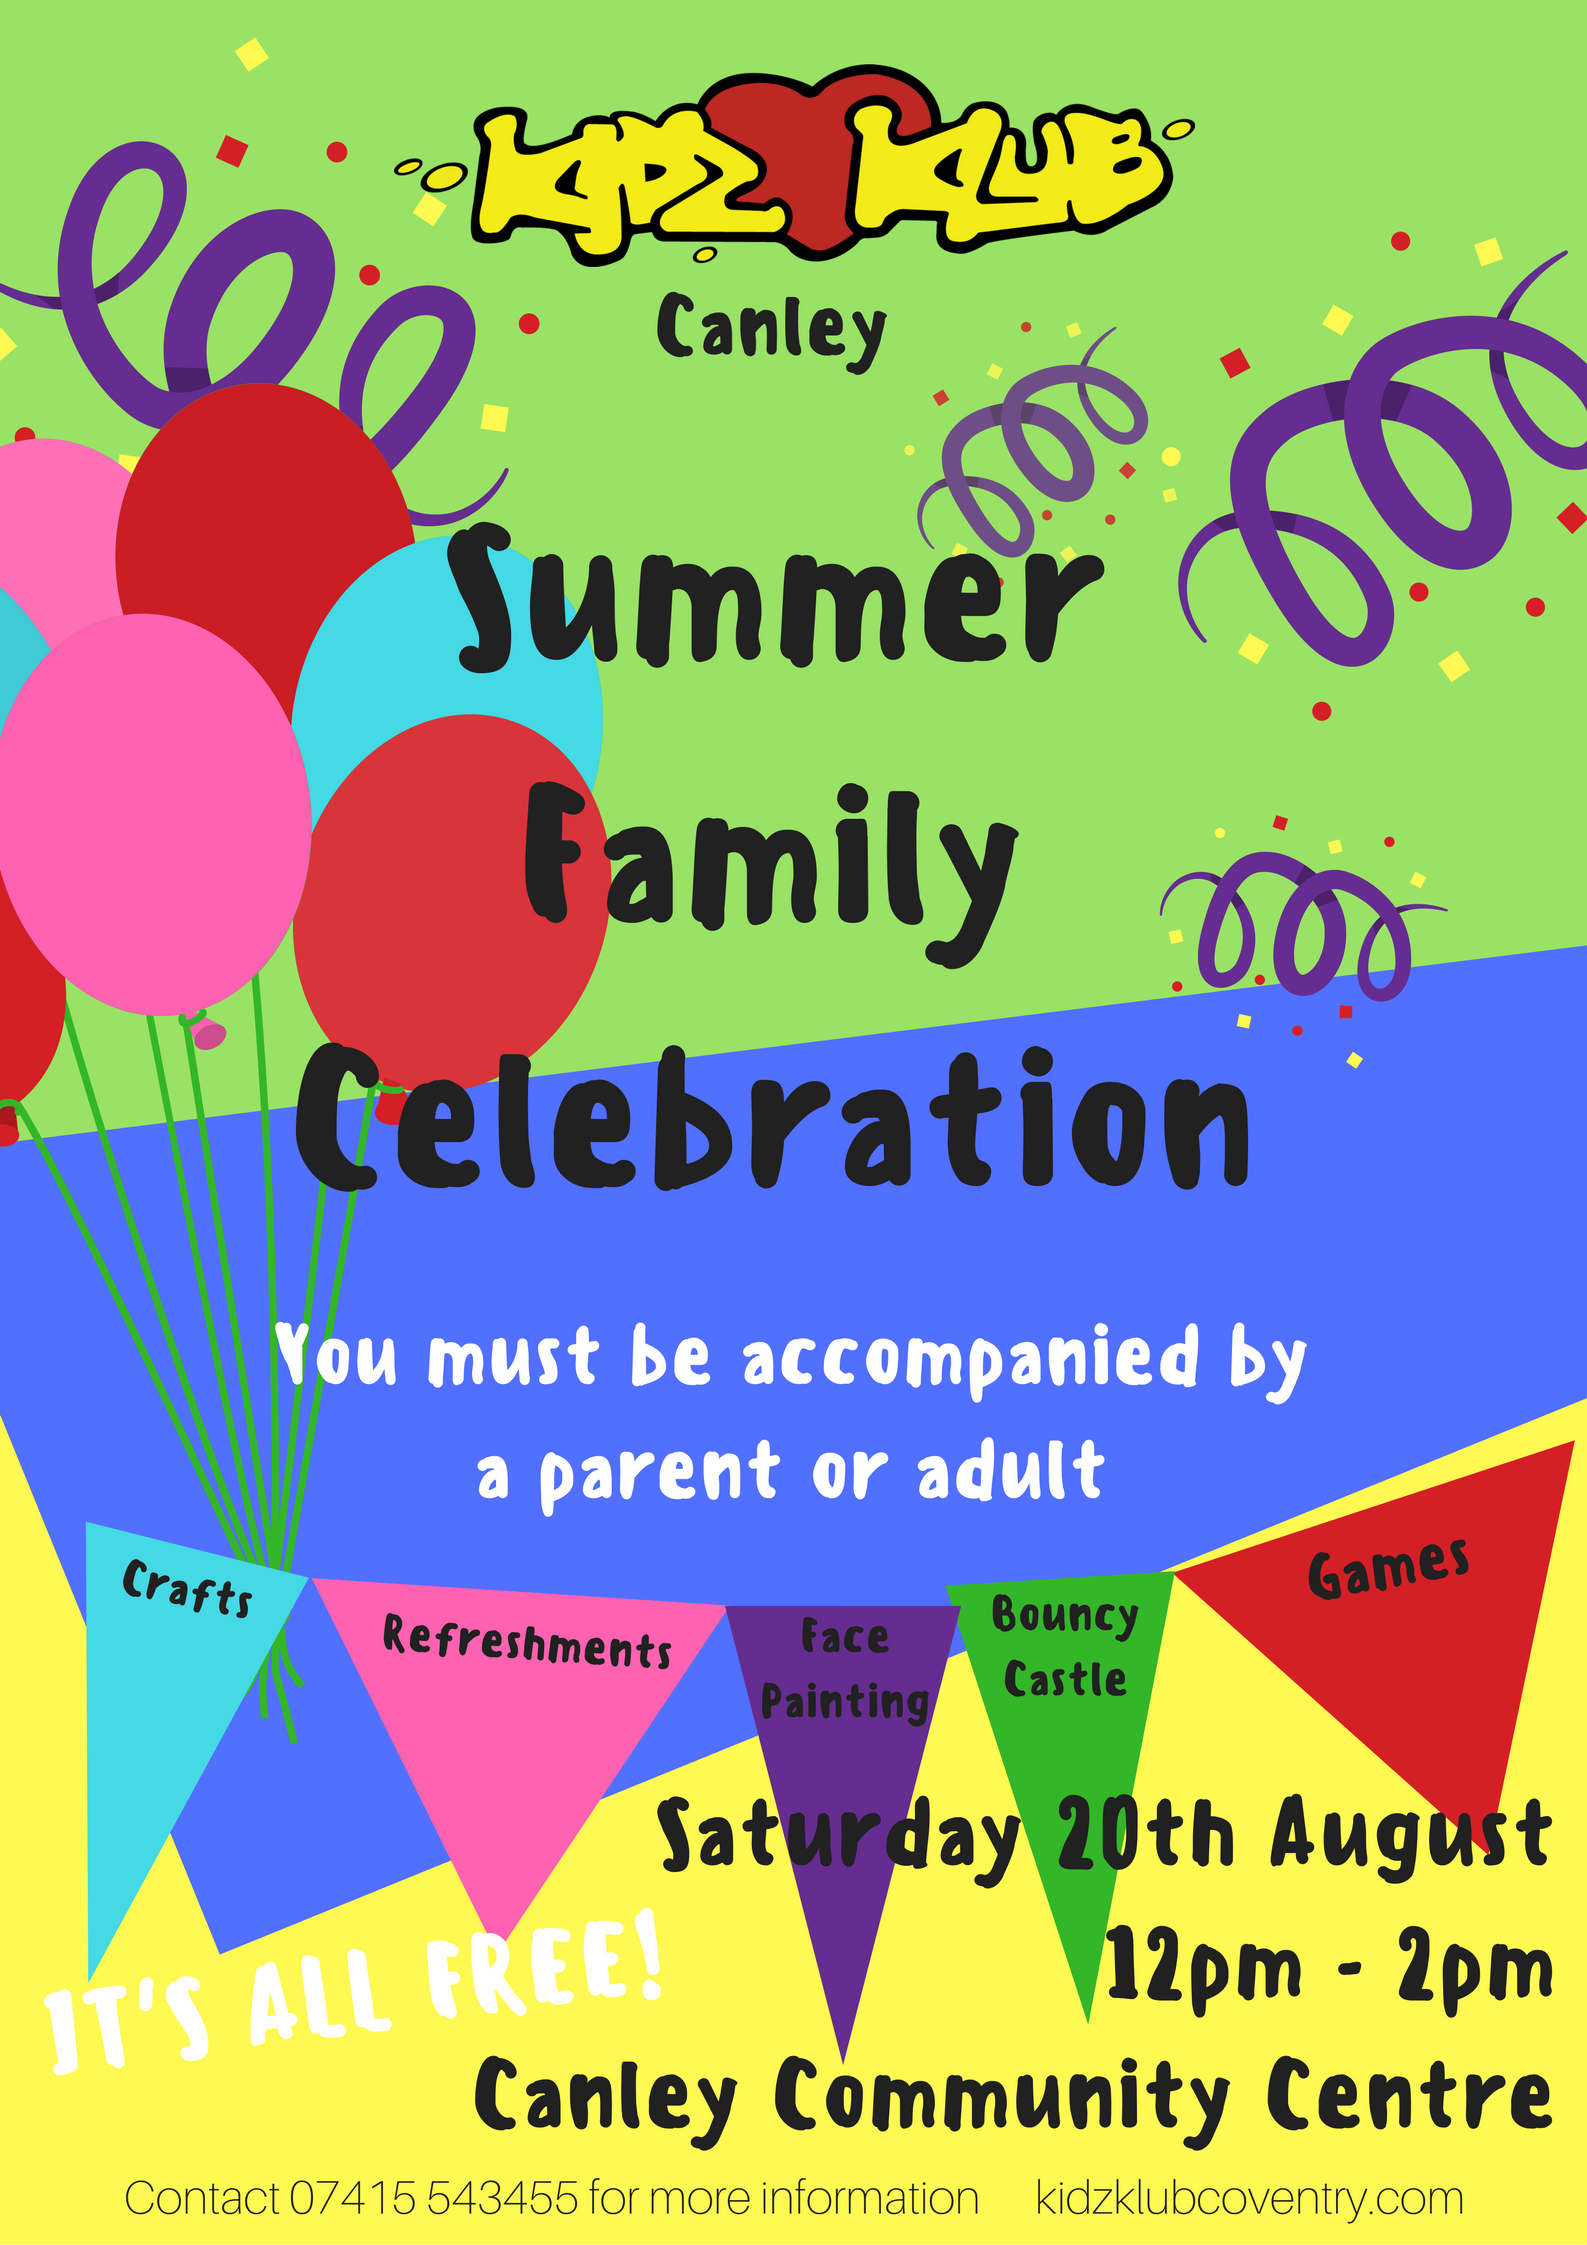 Kidz Klub Canley Summer Celebration!